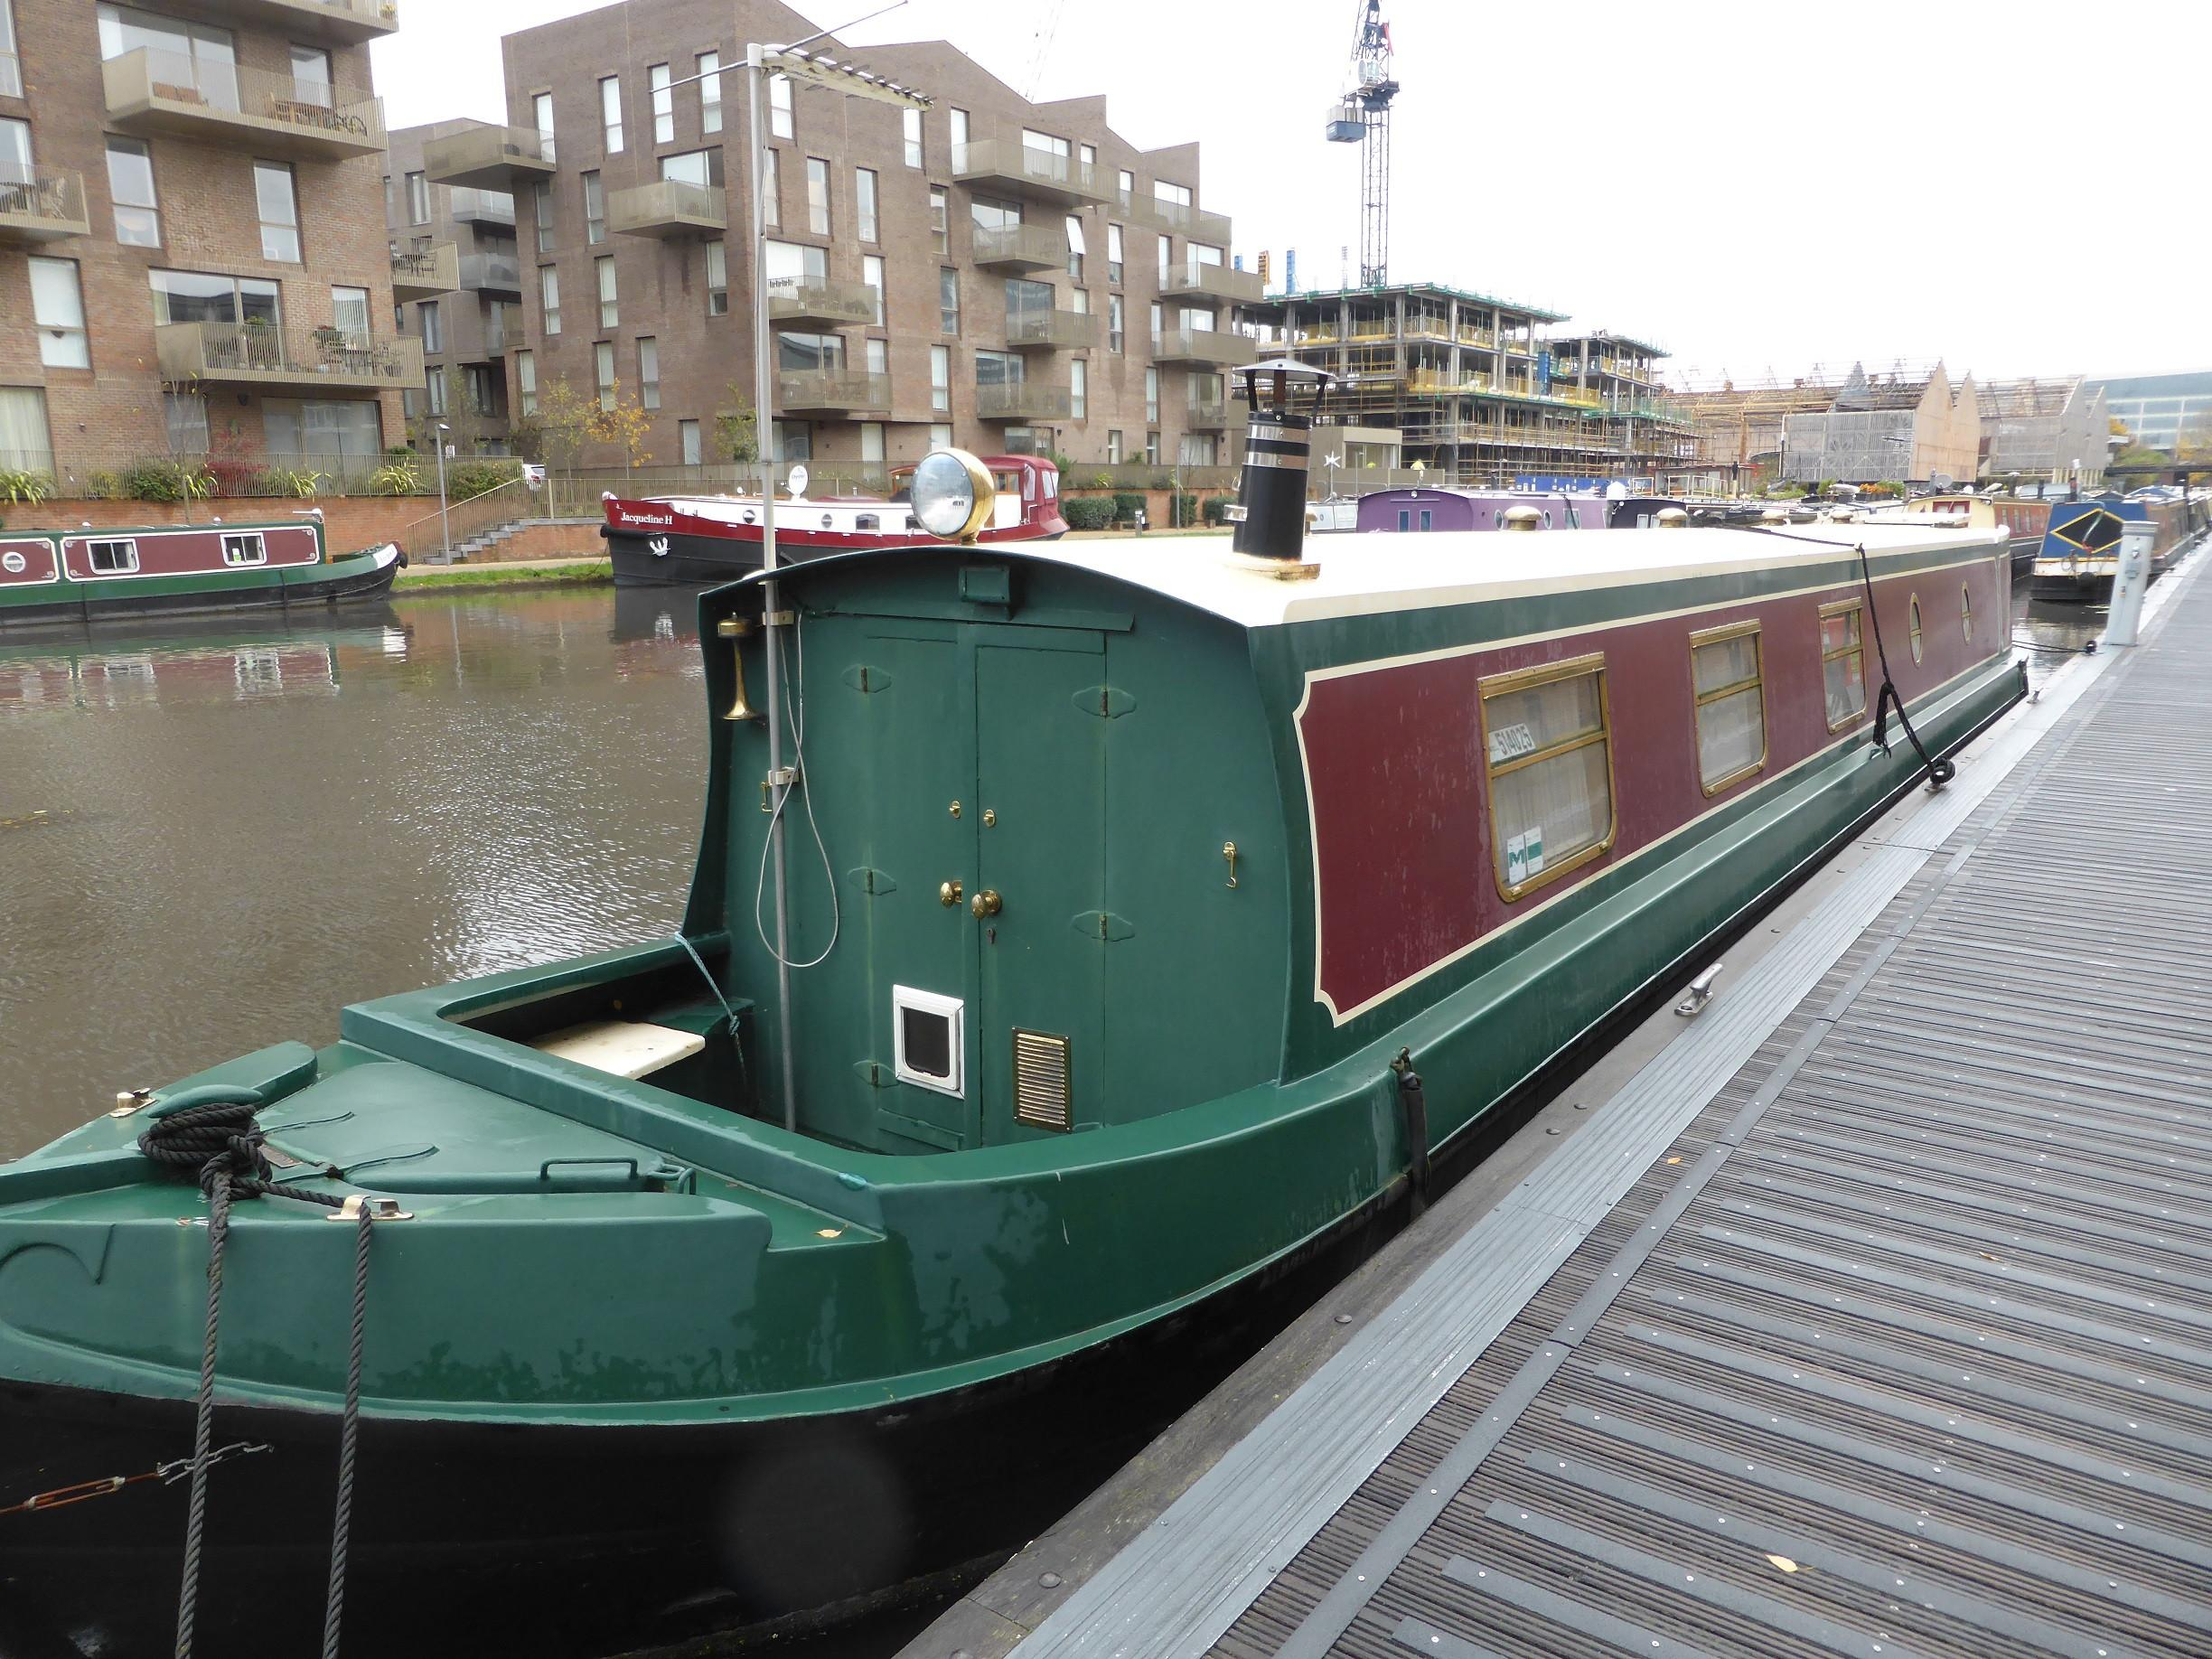 Narrowboat - Liverpool Boats 52 Trad by Paul Williams